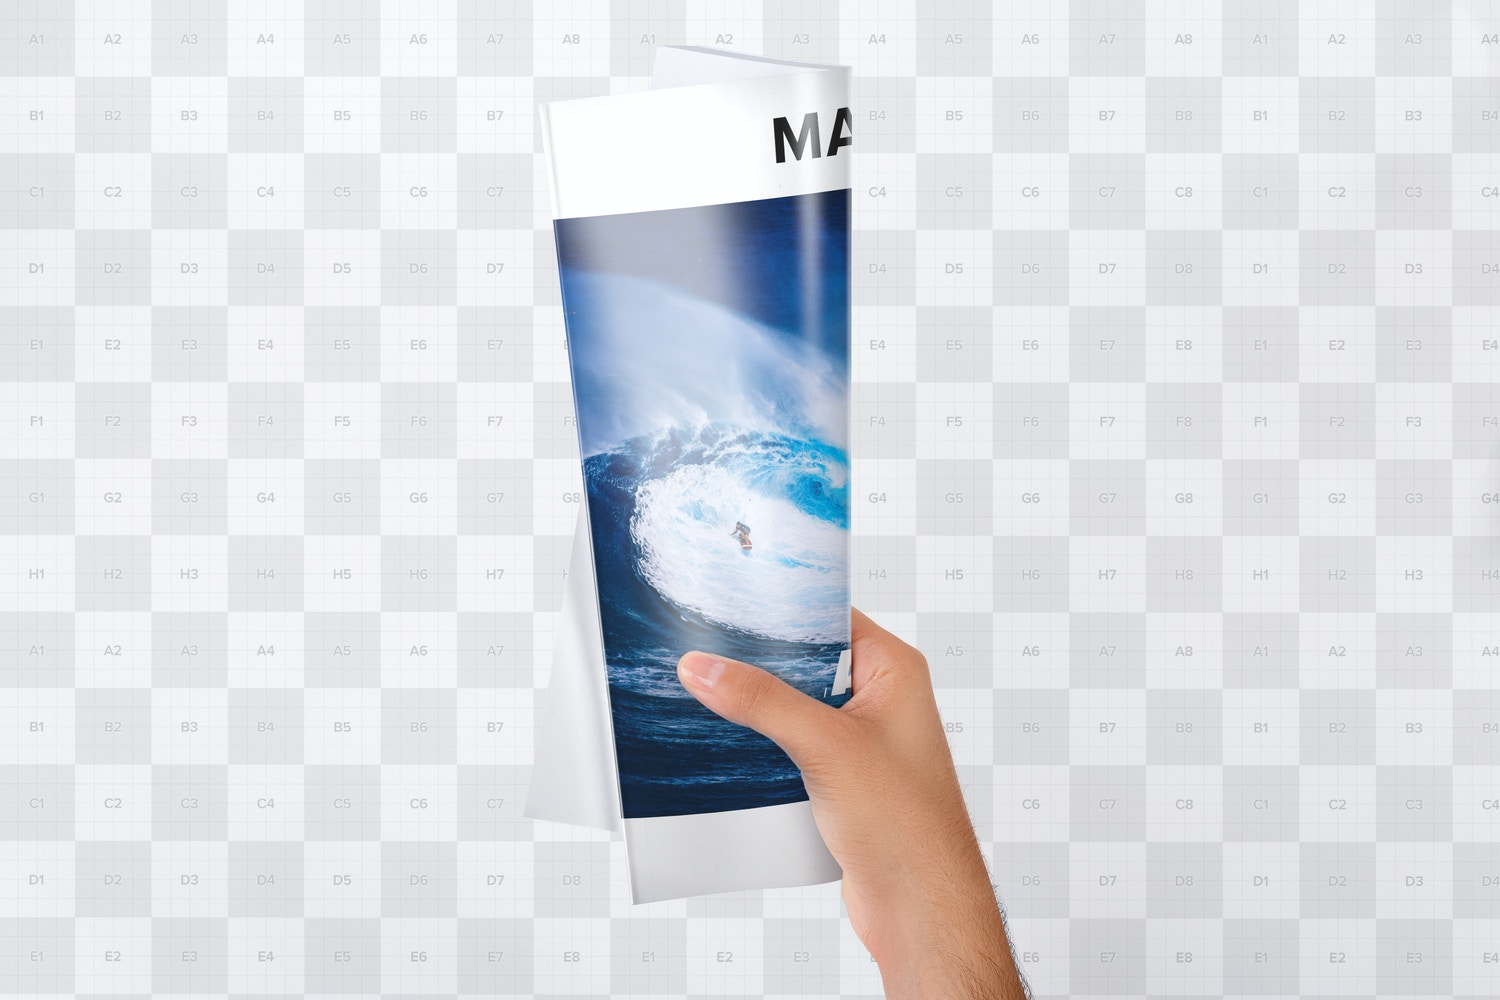 Holding A4 Magazine Rolled Mockup - Custom Background